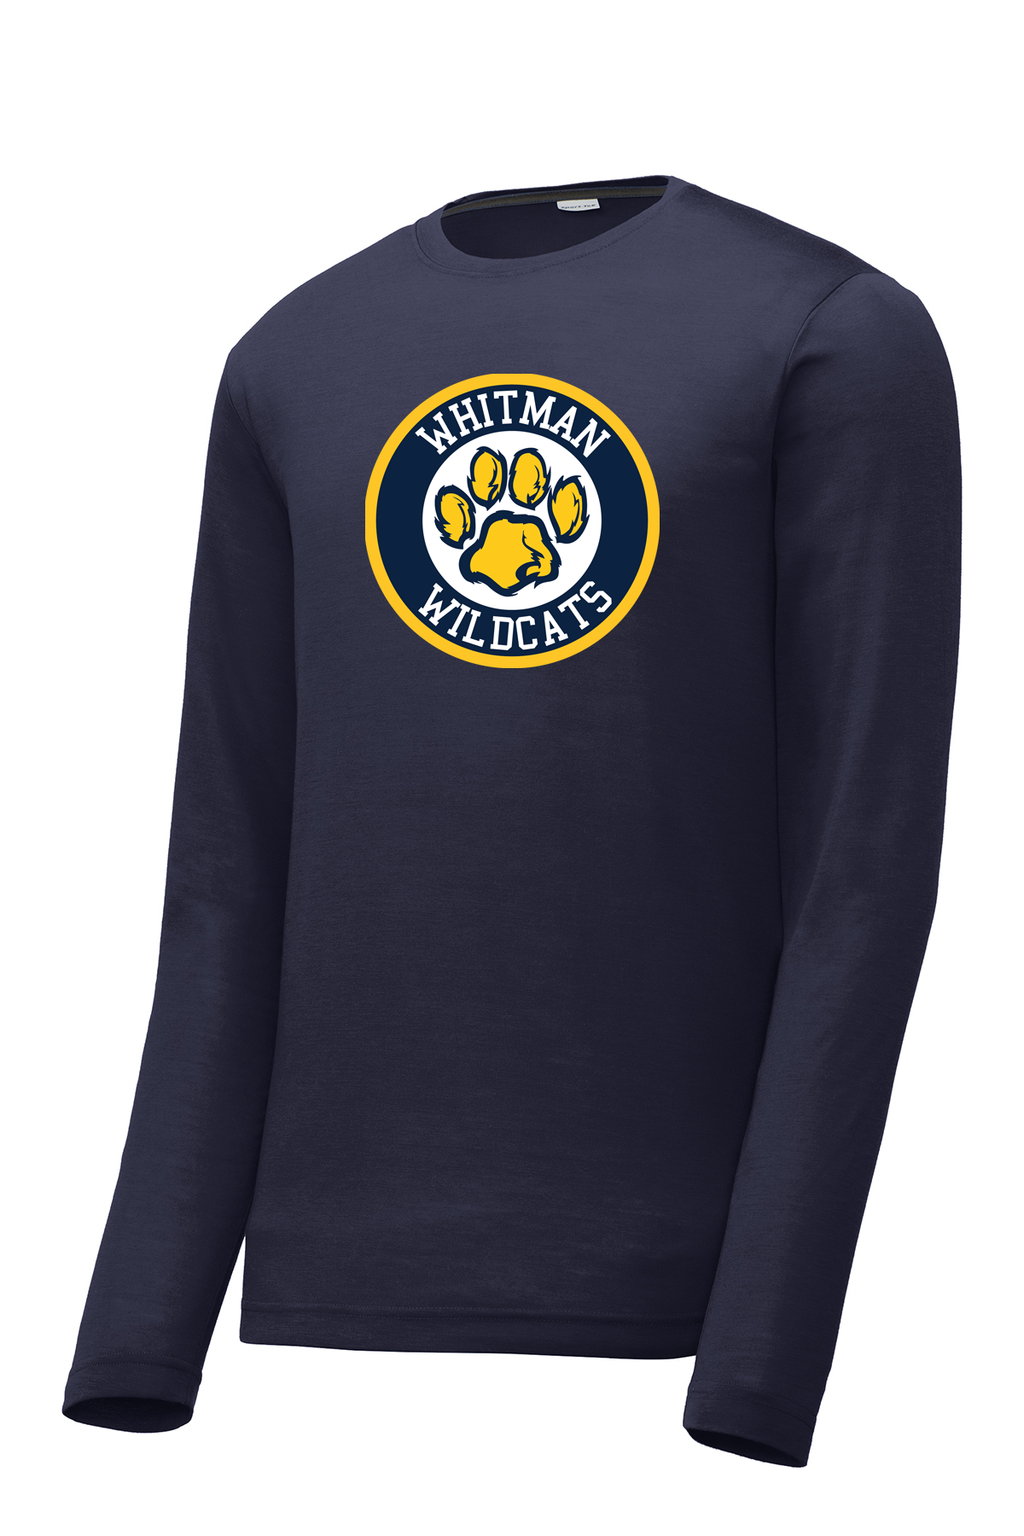 Whitman Wildcats Long Sleeve CottonTouch Performance Shirt